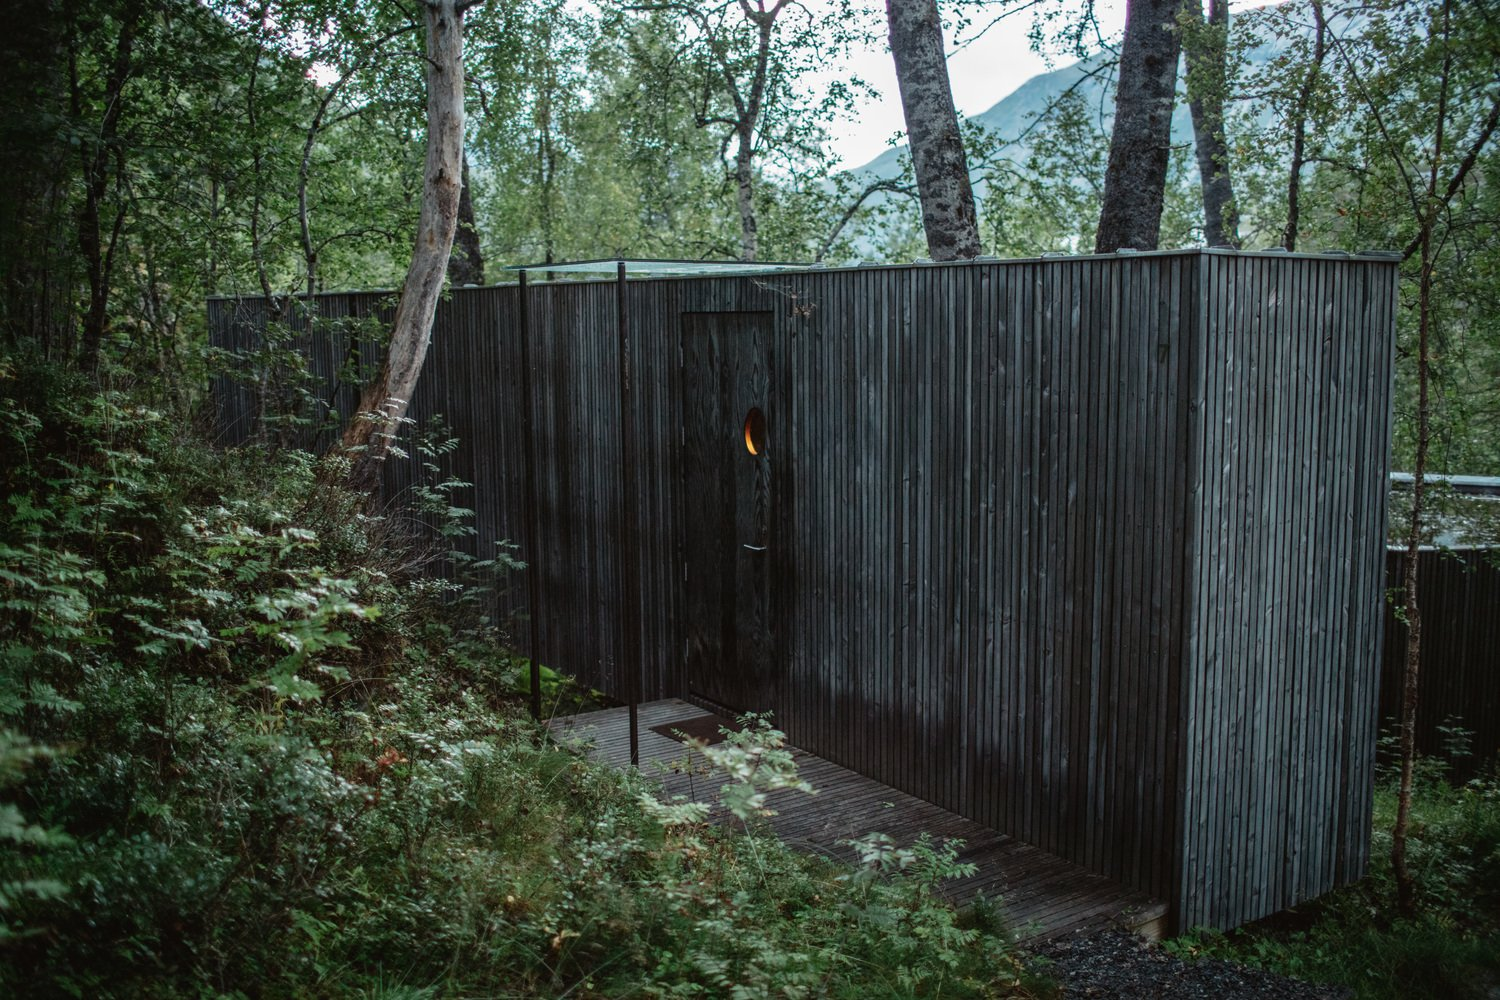 Cabins & Hideouts by Stephen Blake from Juvet (Ex-Machina) Landscape Hotel